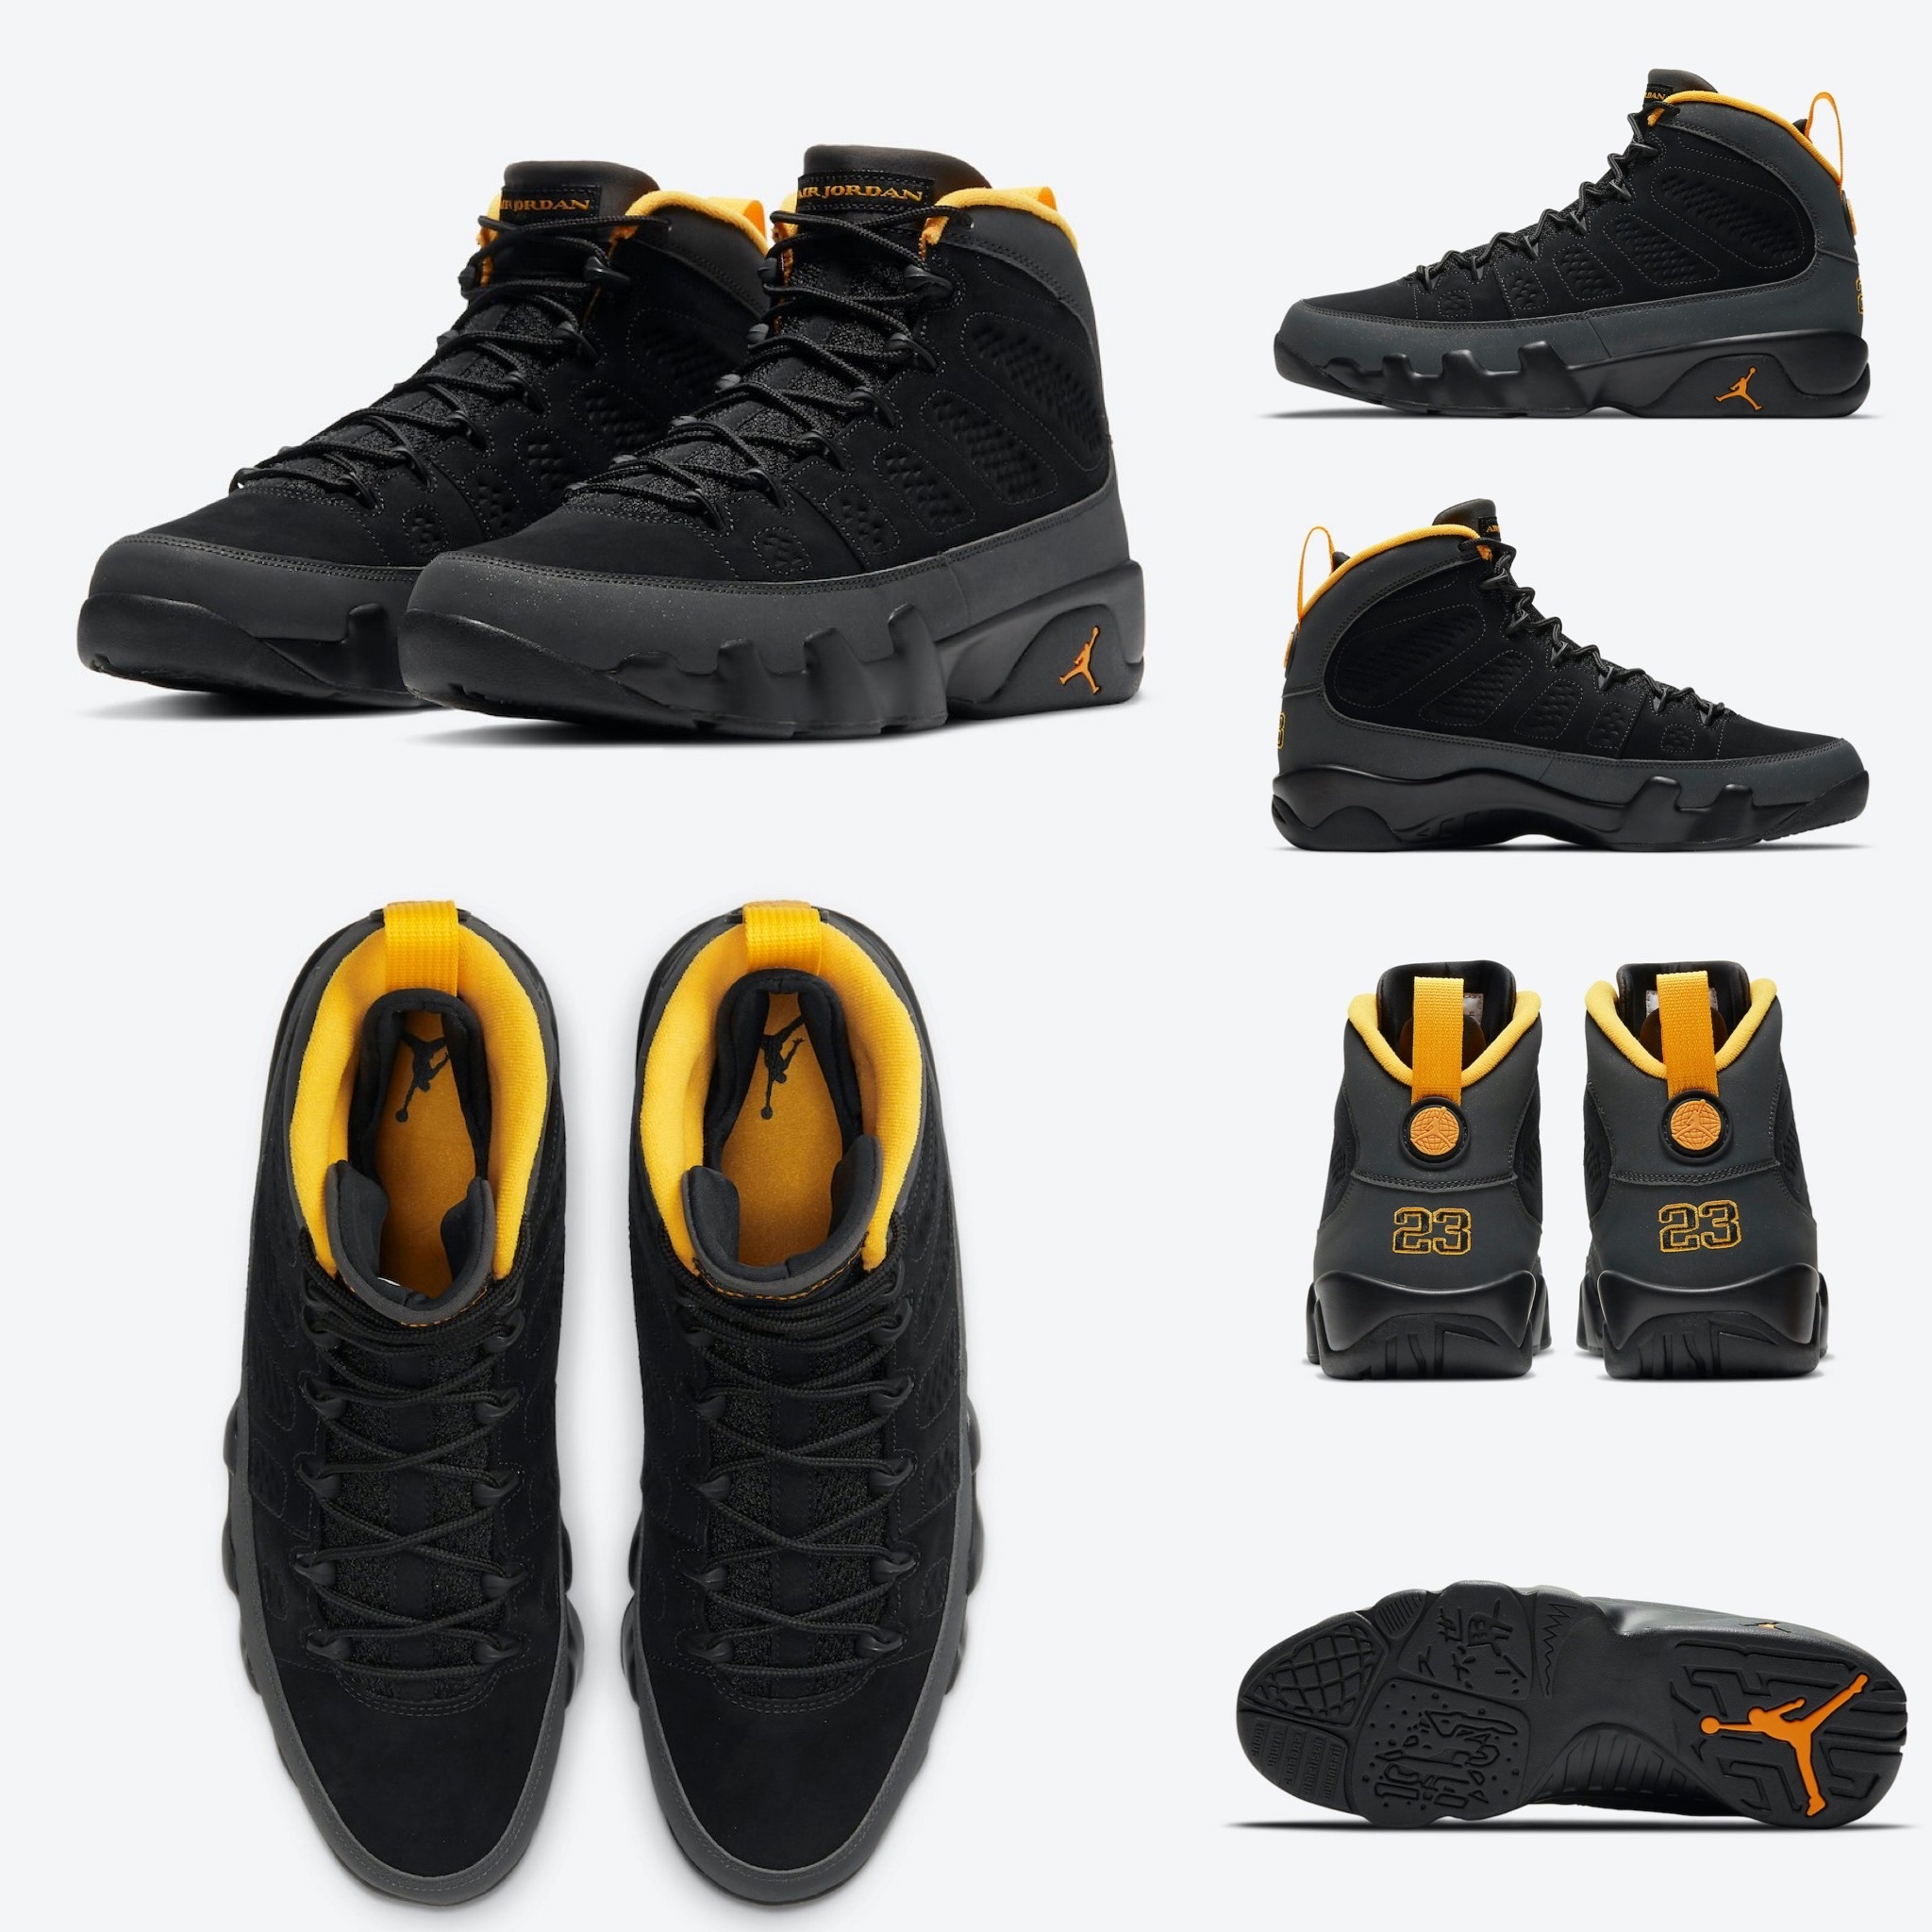 nike-air-jordan-9-university-gold-ct8019-070-release-20210130